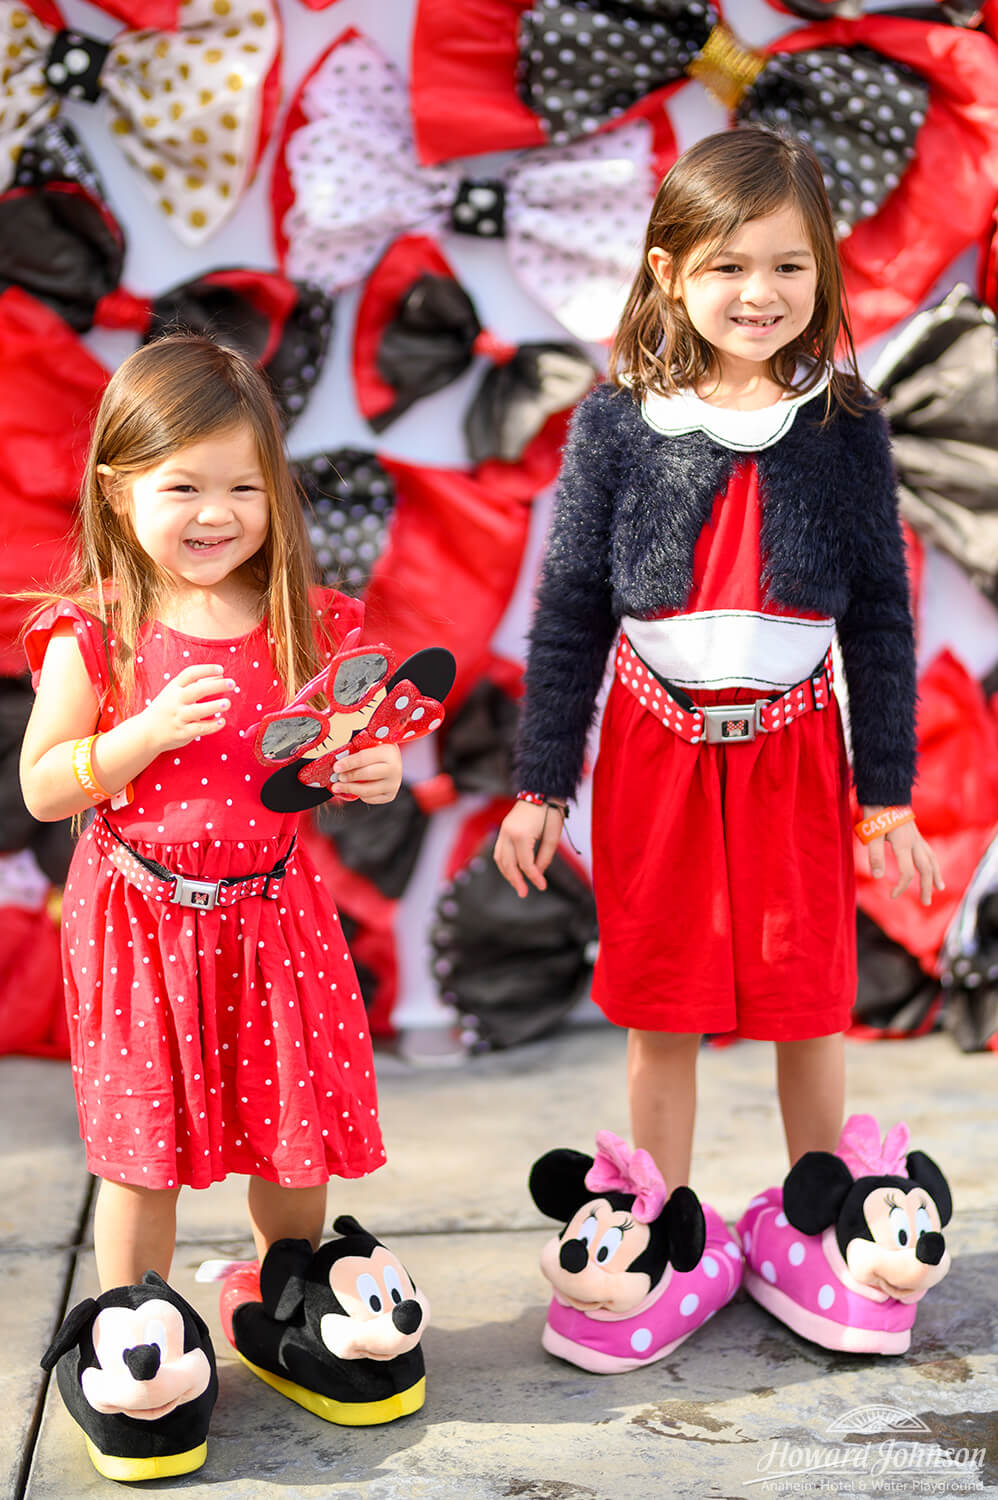 two little girls wear Mickey and Minnie Mouse slippers while smiling in front of a backdrop of polka dot bows